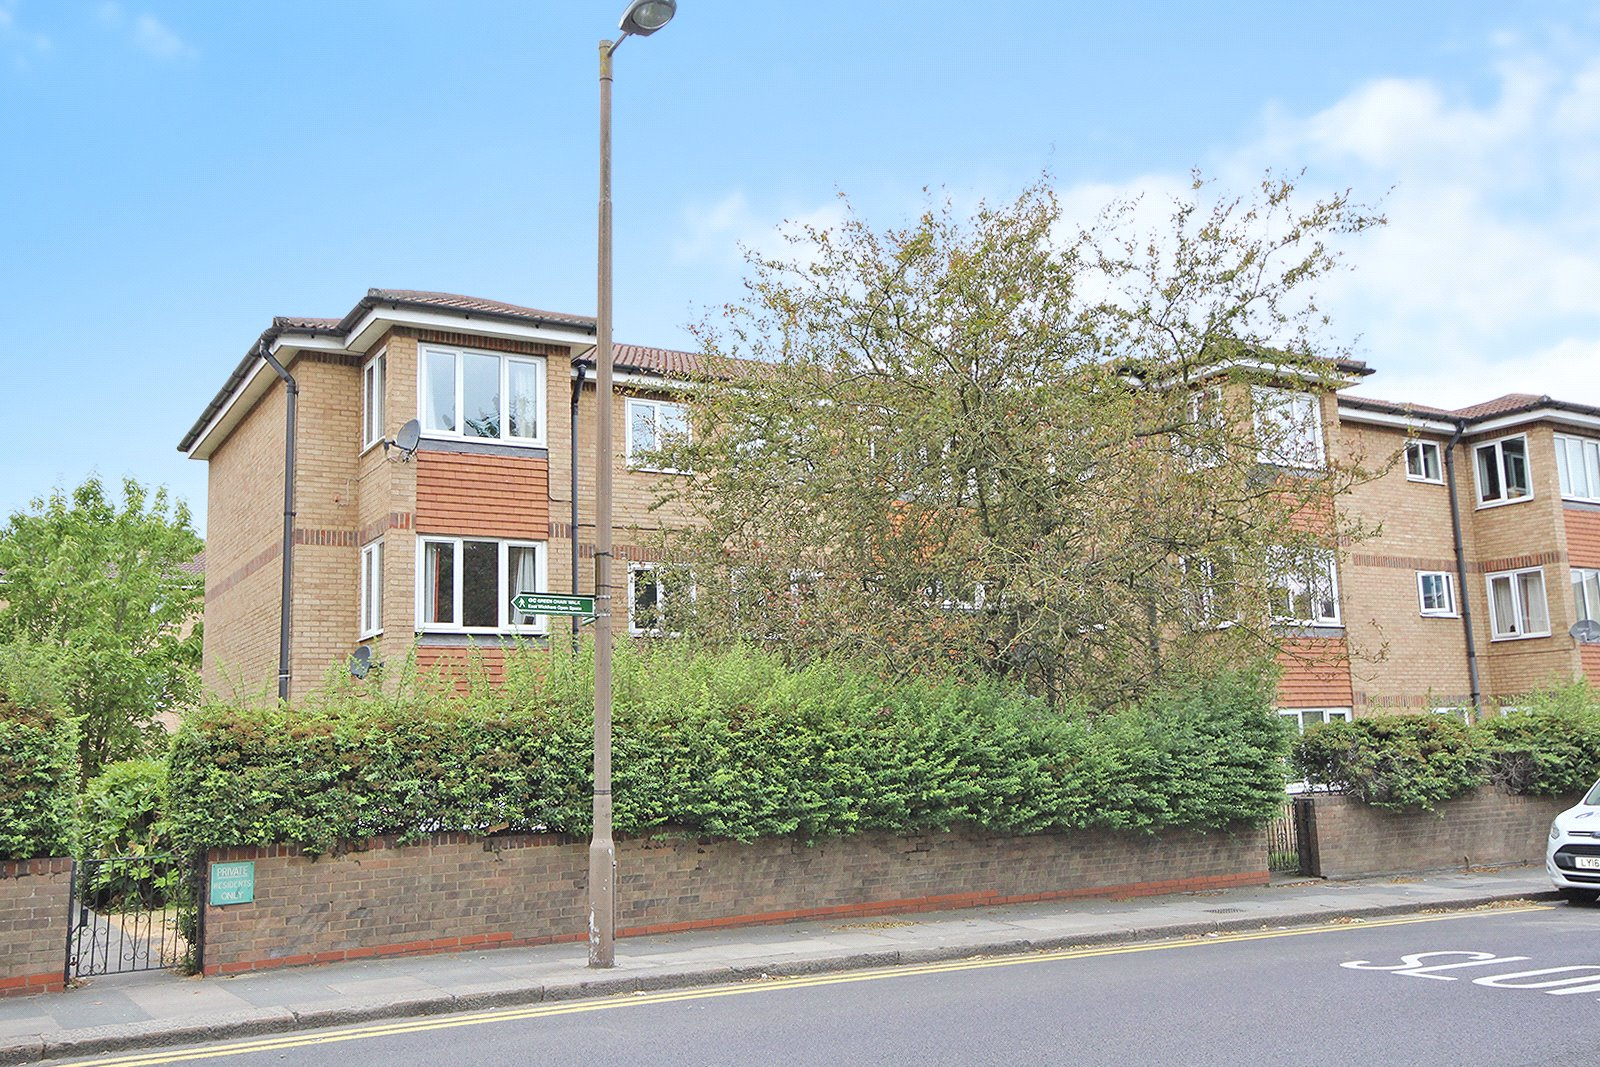 Pinecroft Court, Wickham Lane, Welling, Kent, DA16